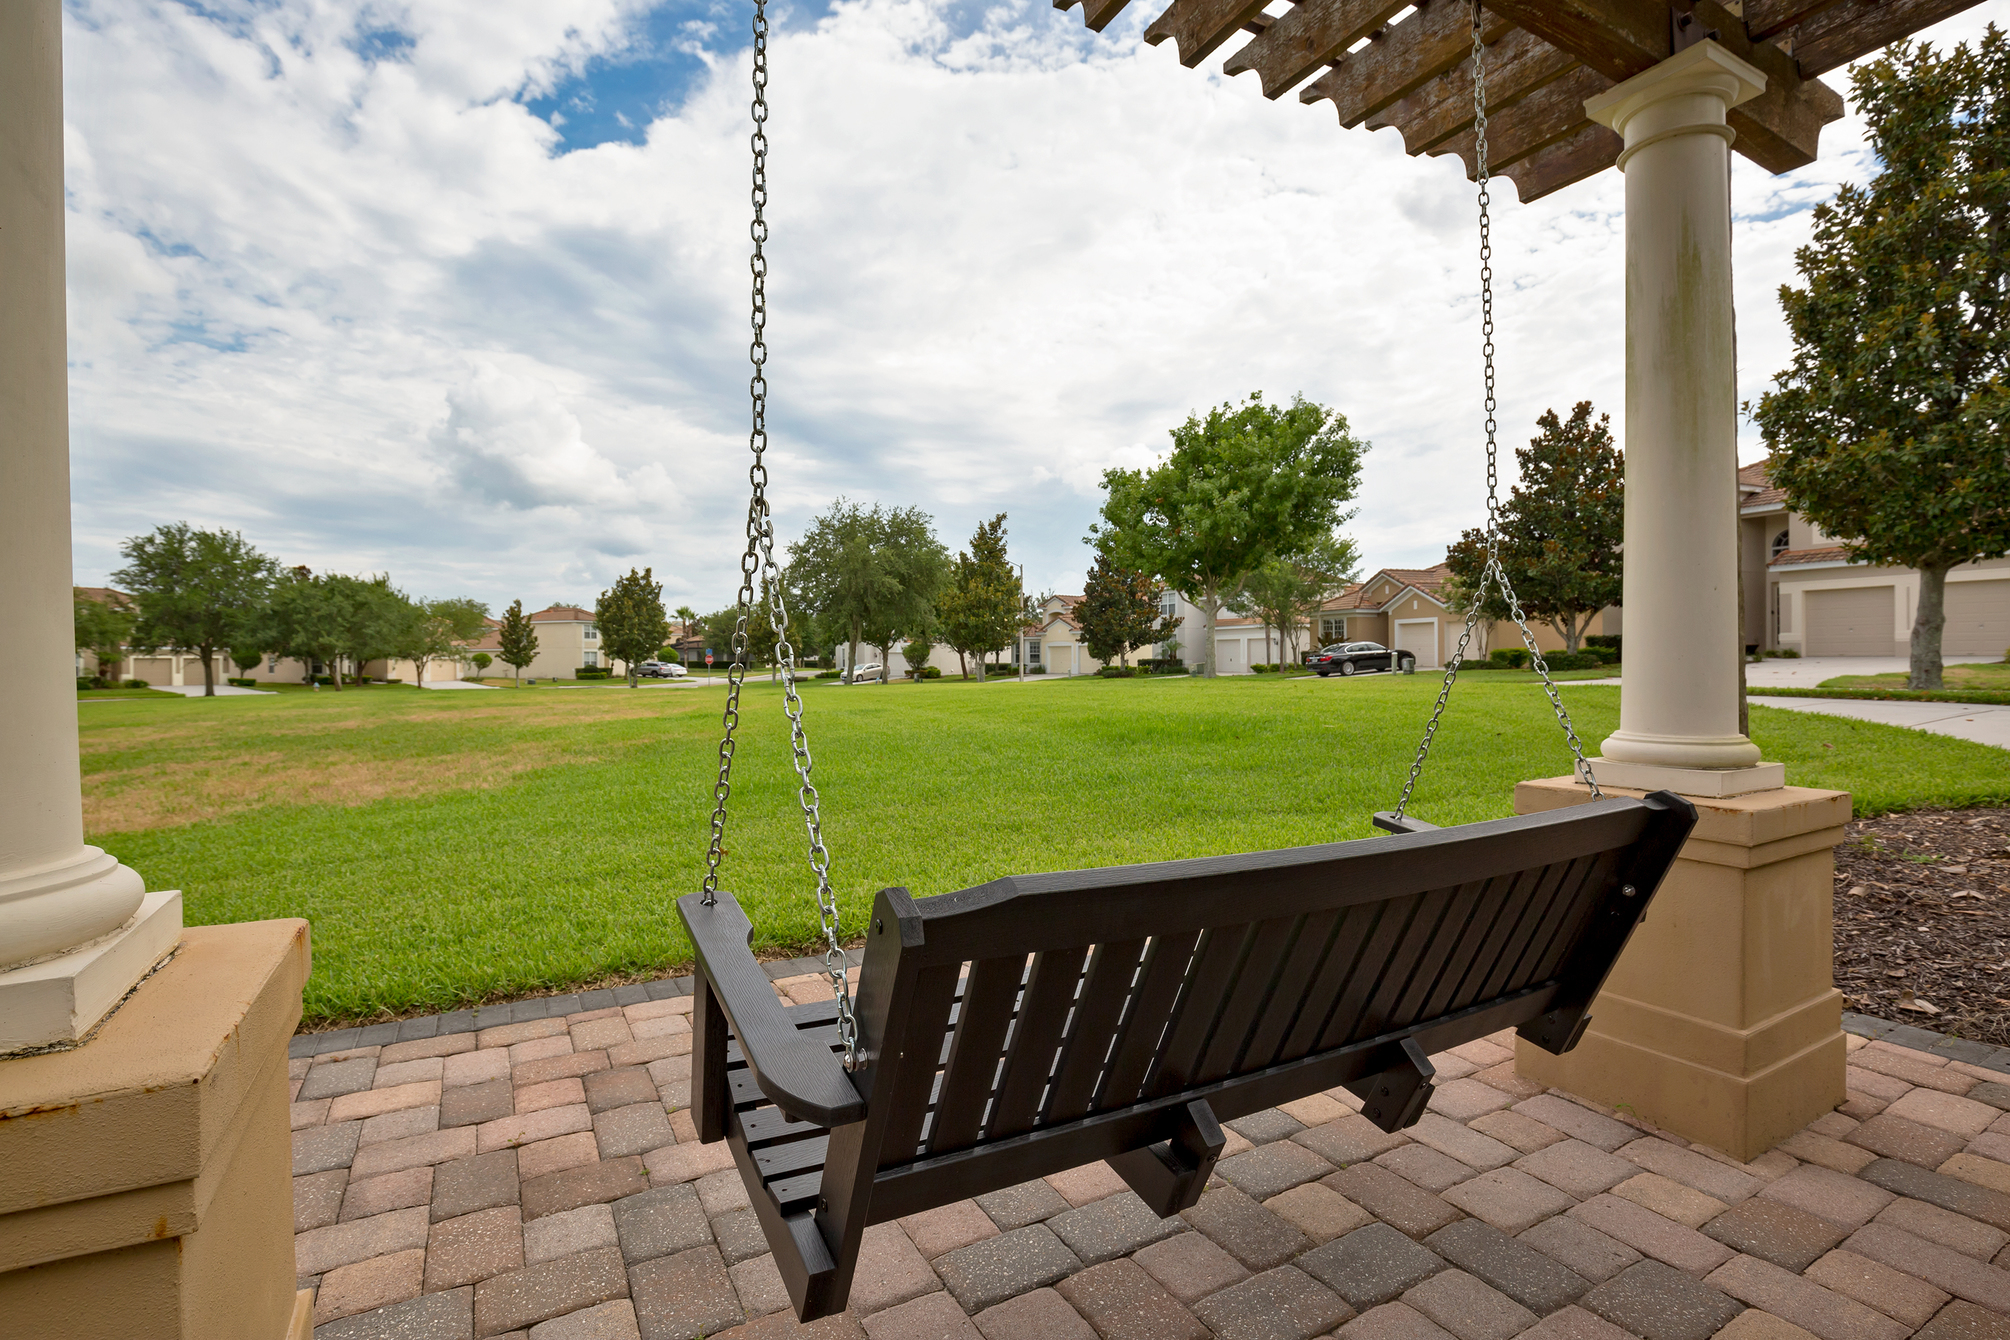 Park Bench Swing and Field